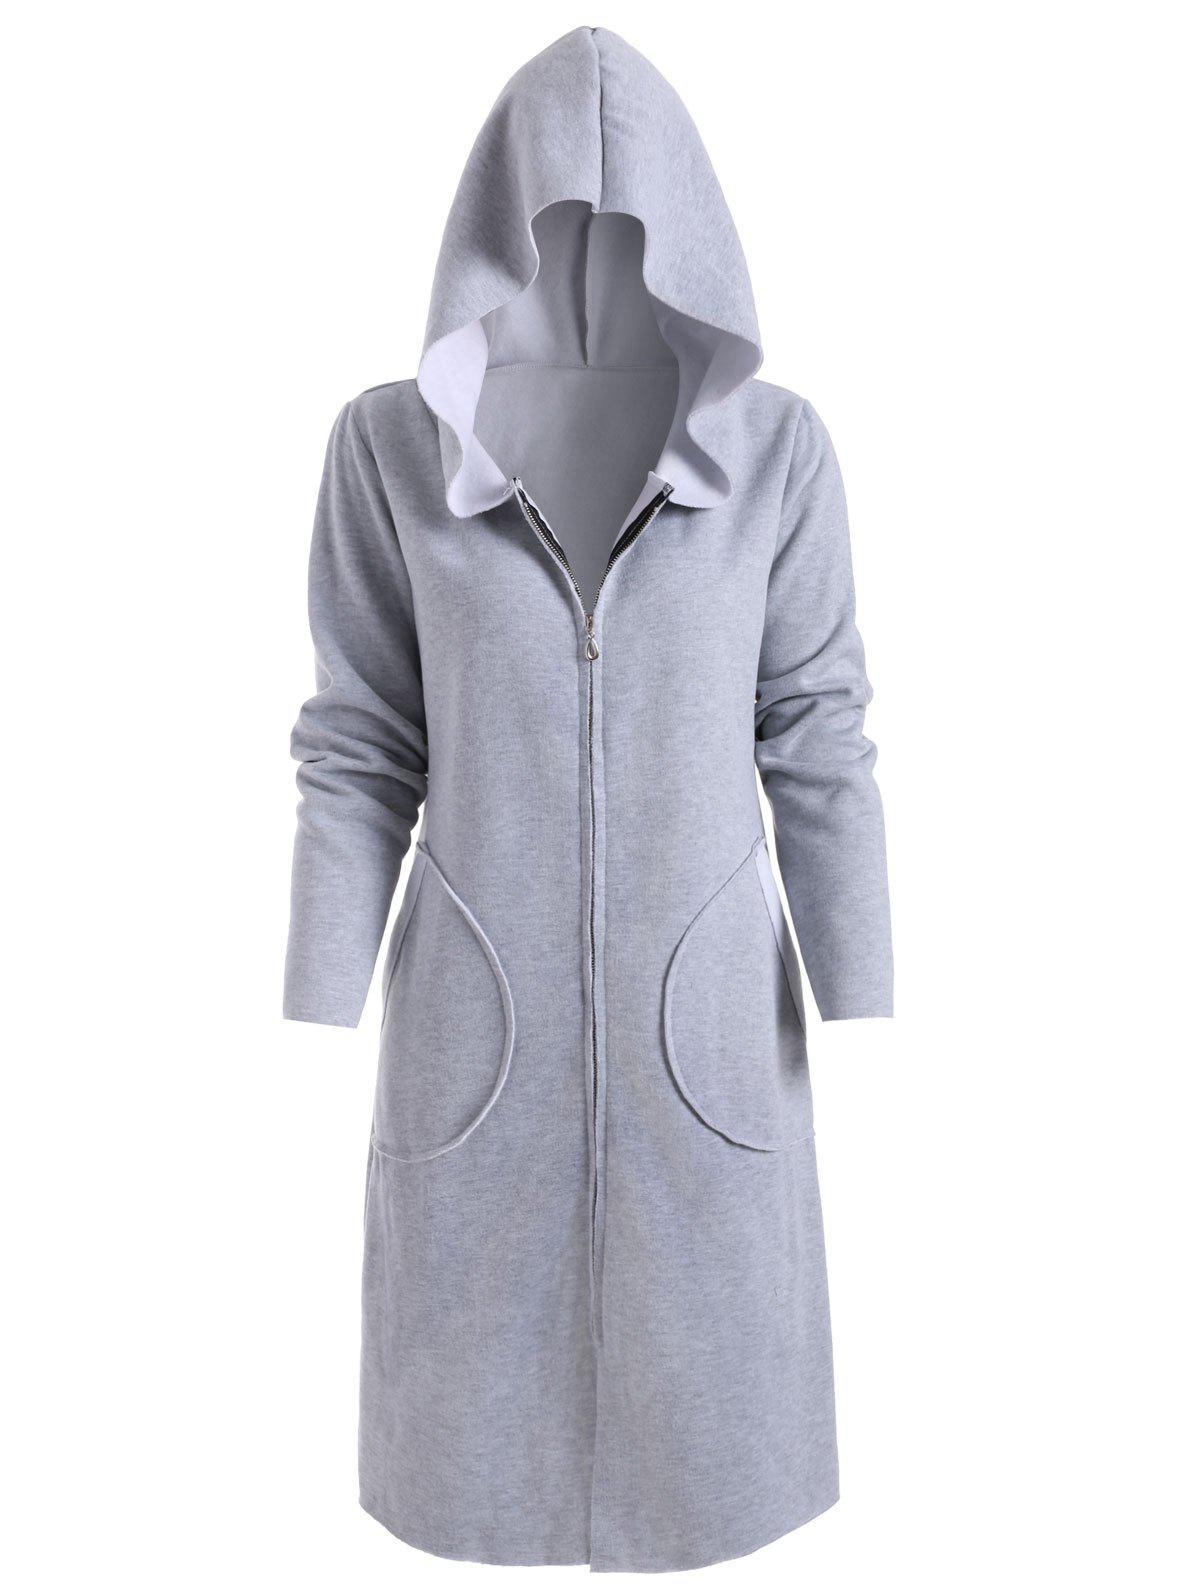 Zip Up Hooded Coat with Pockets - GRAY S